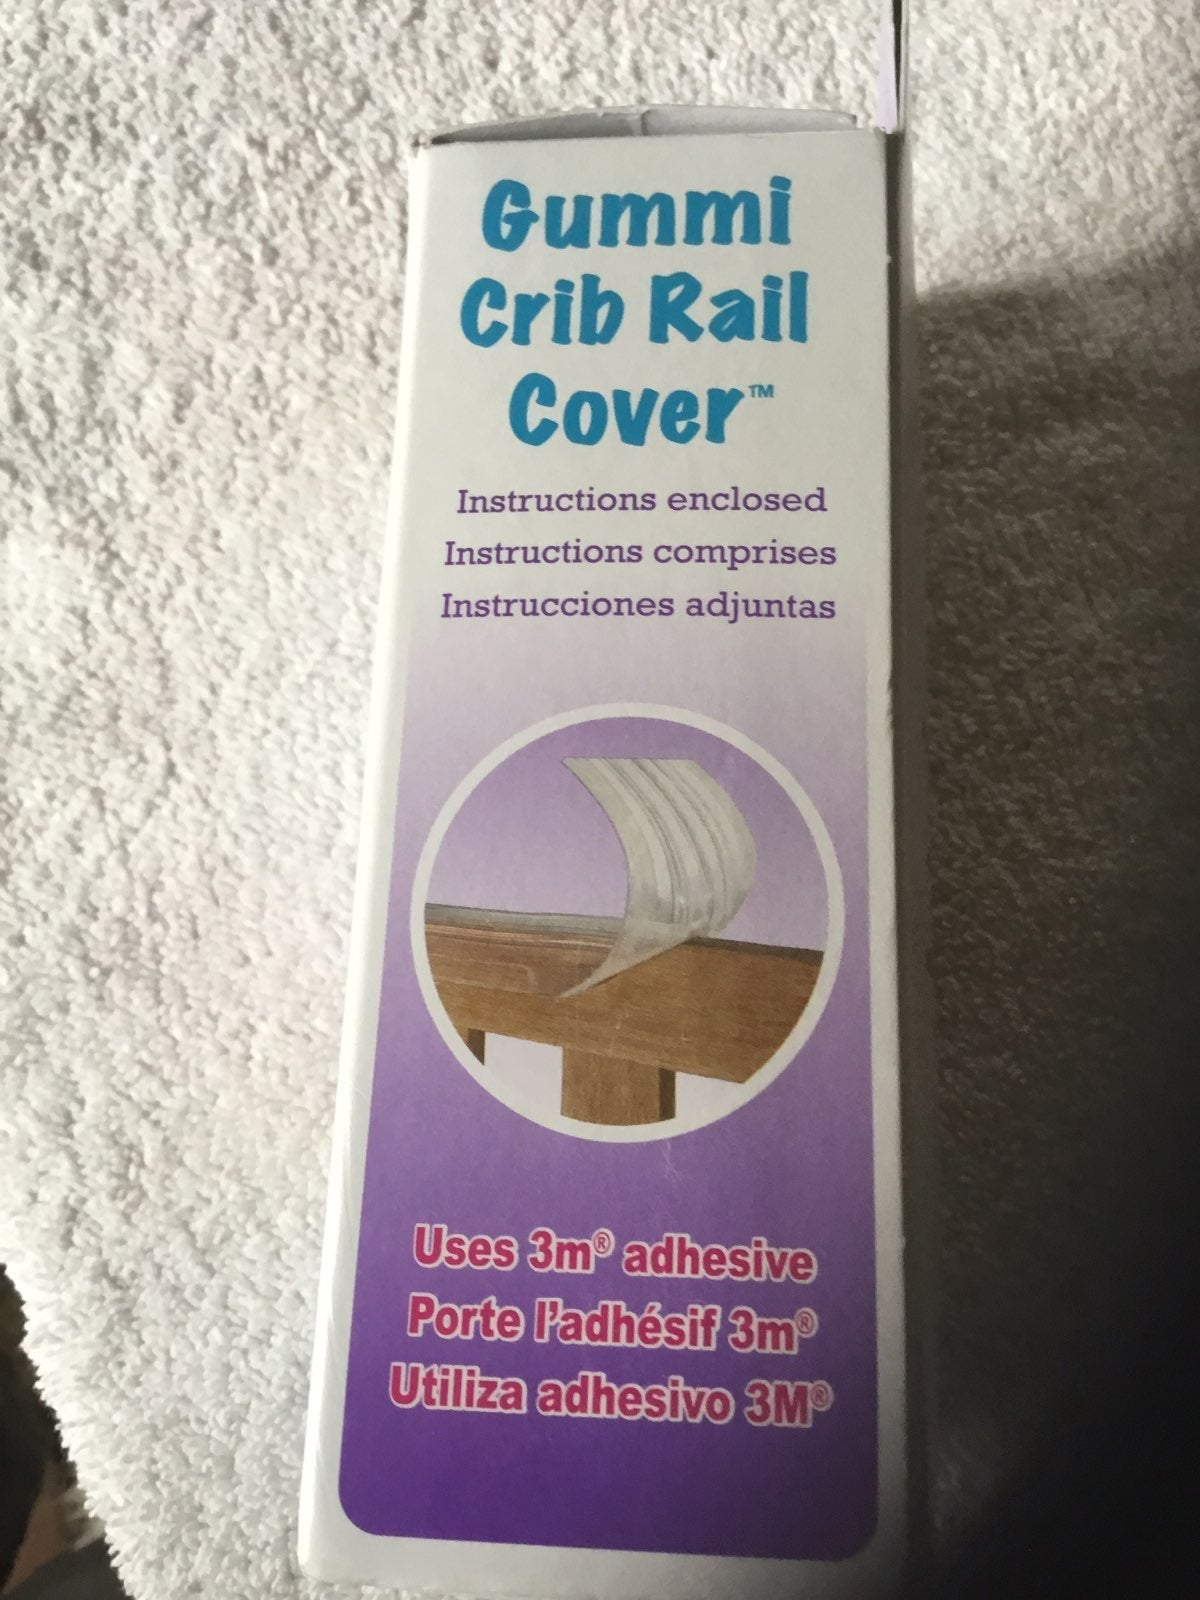 Kidkusion crib rail cover